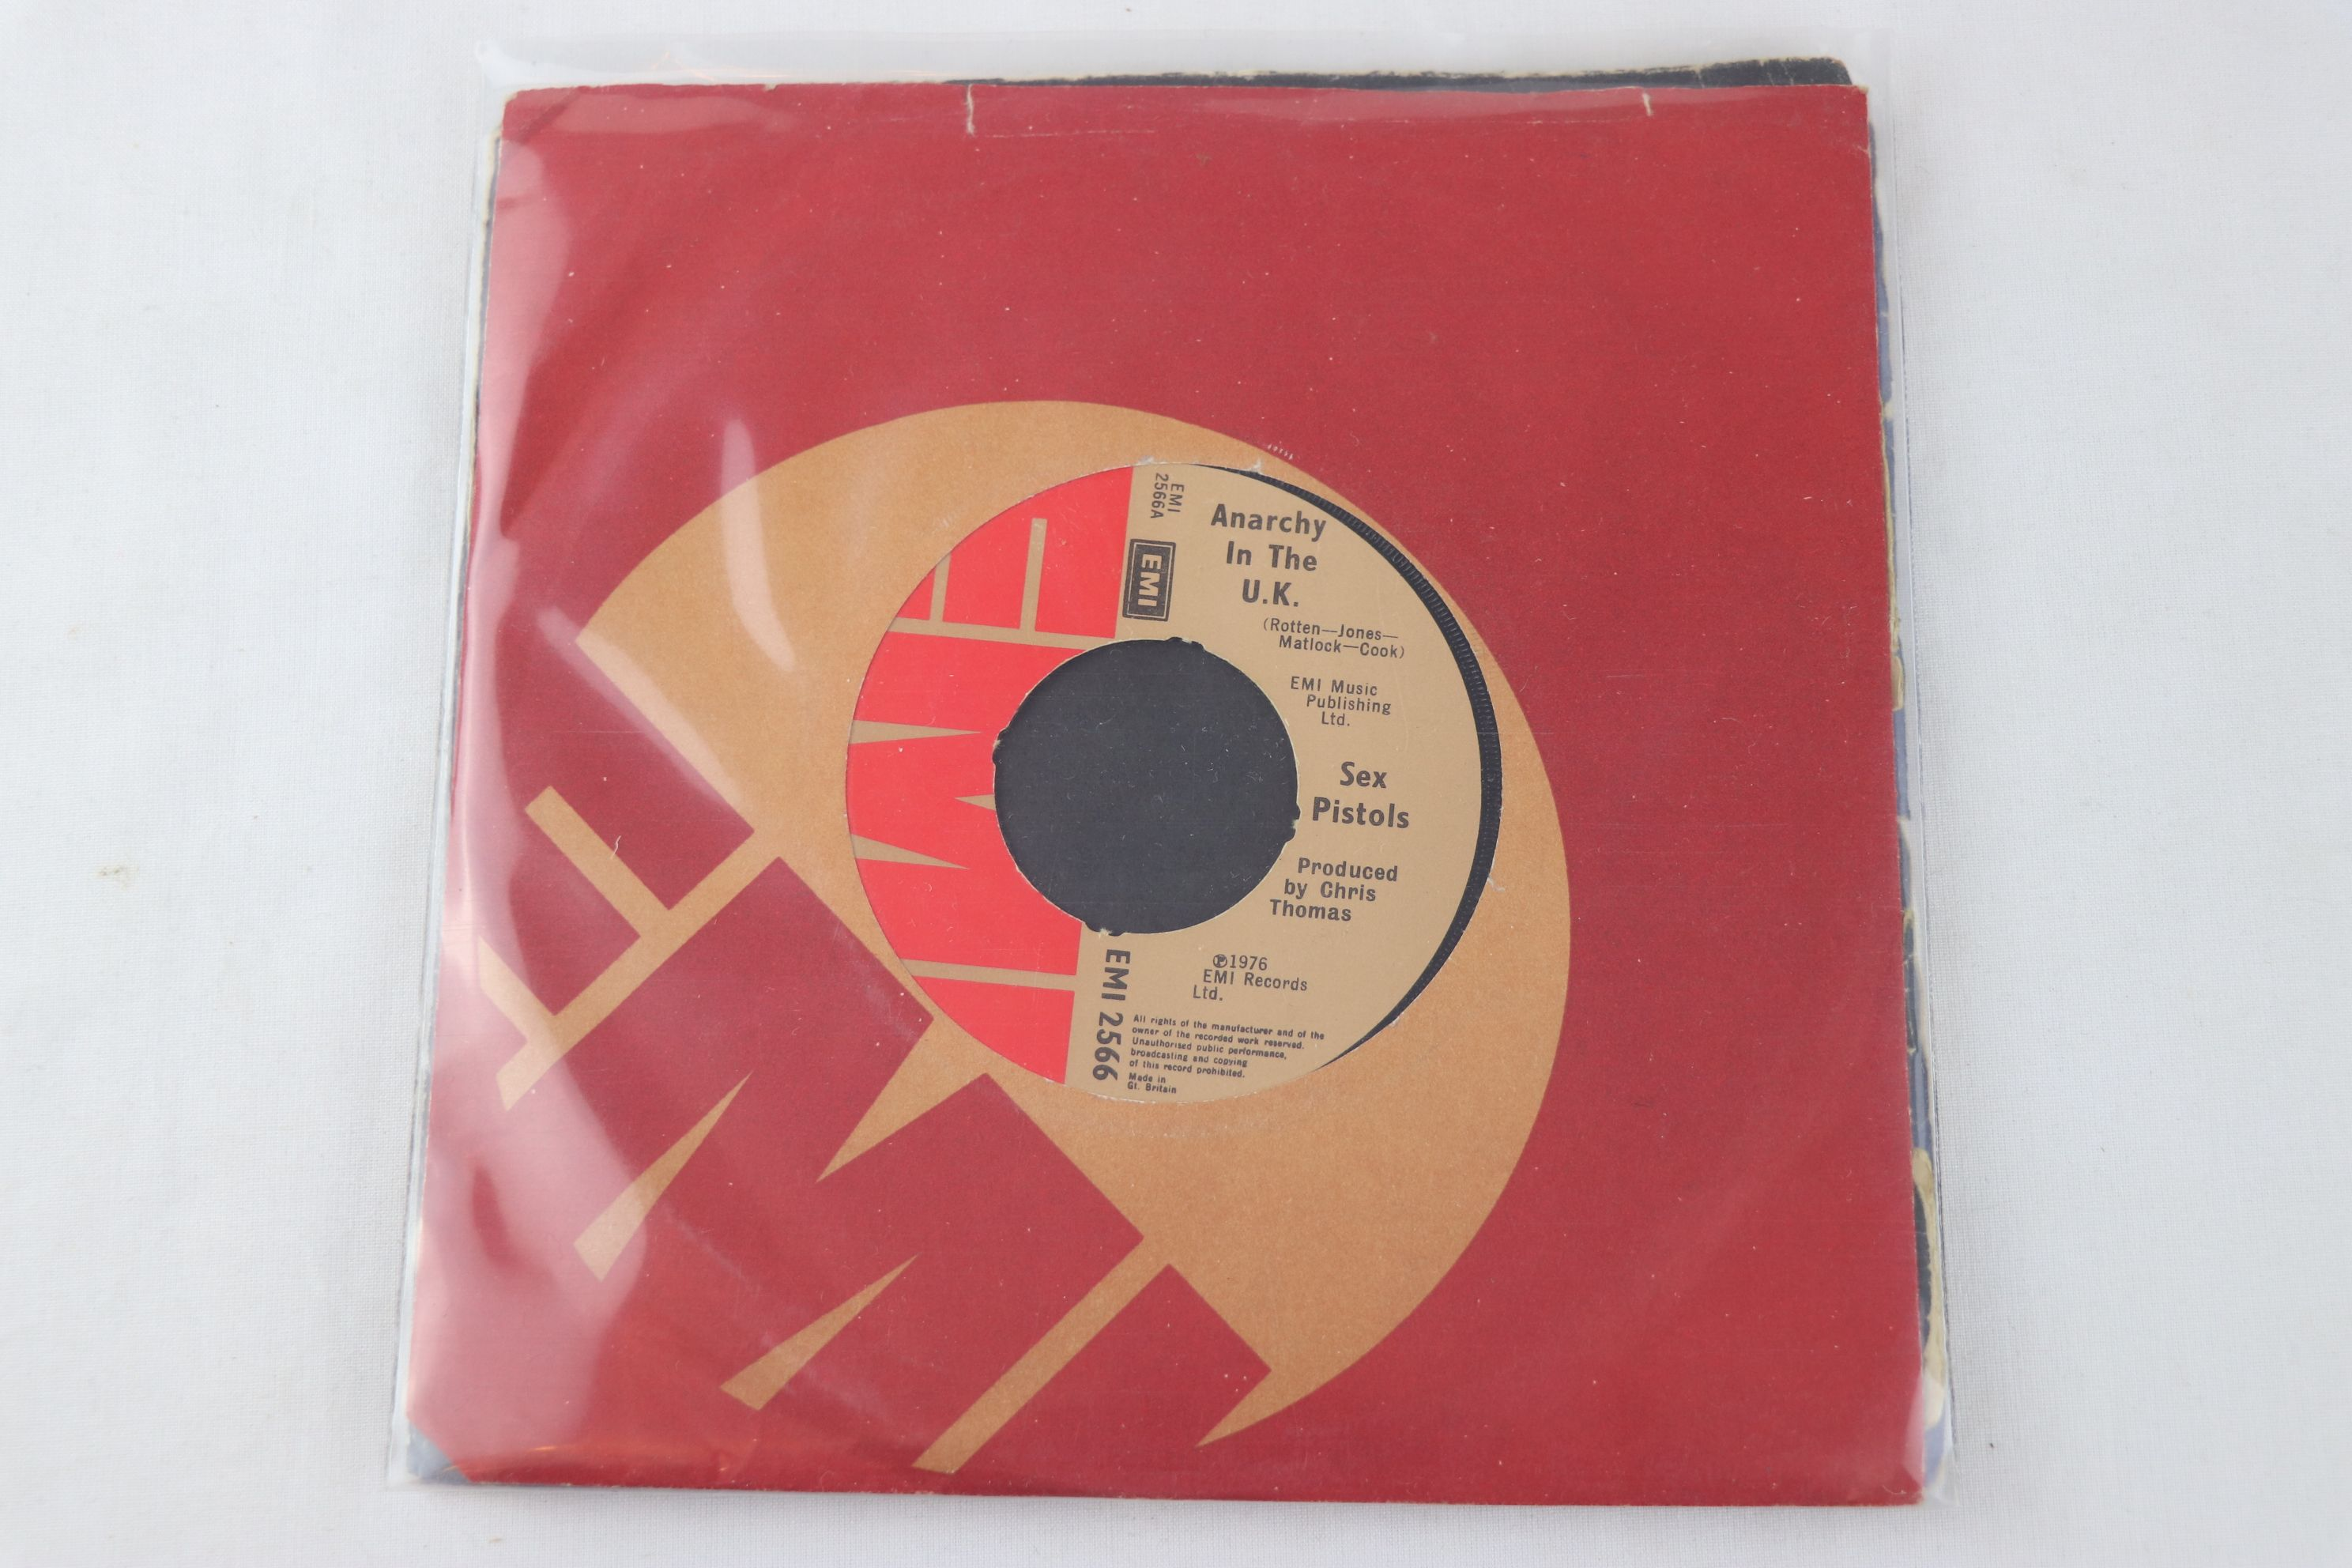 PUNK - SEX PISTOLS - PACK OF 7 ORIGINAL PRESSING SINGLES. 1. GOD SAVE THE QUEEN, 1977 VIRGIN RECORDS - Image 6 of 8